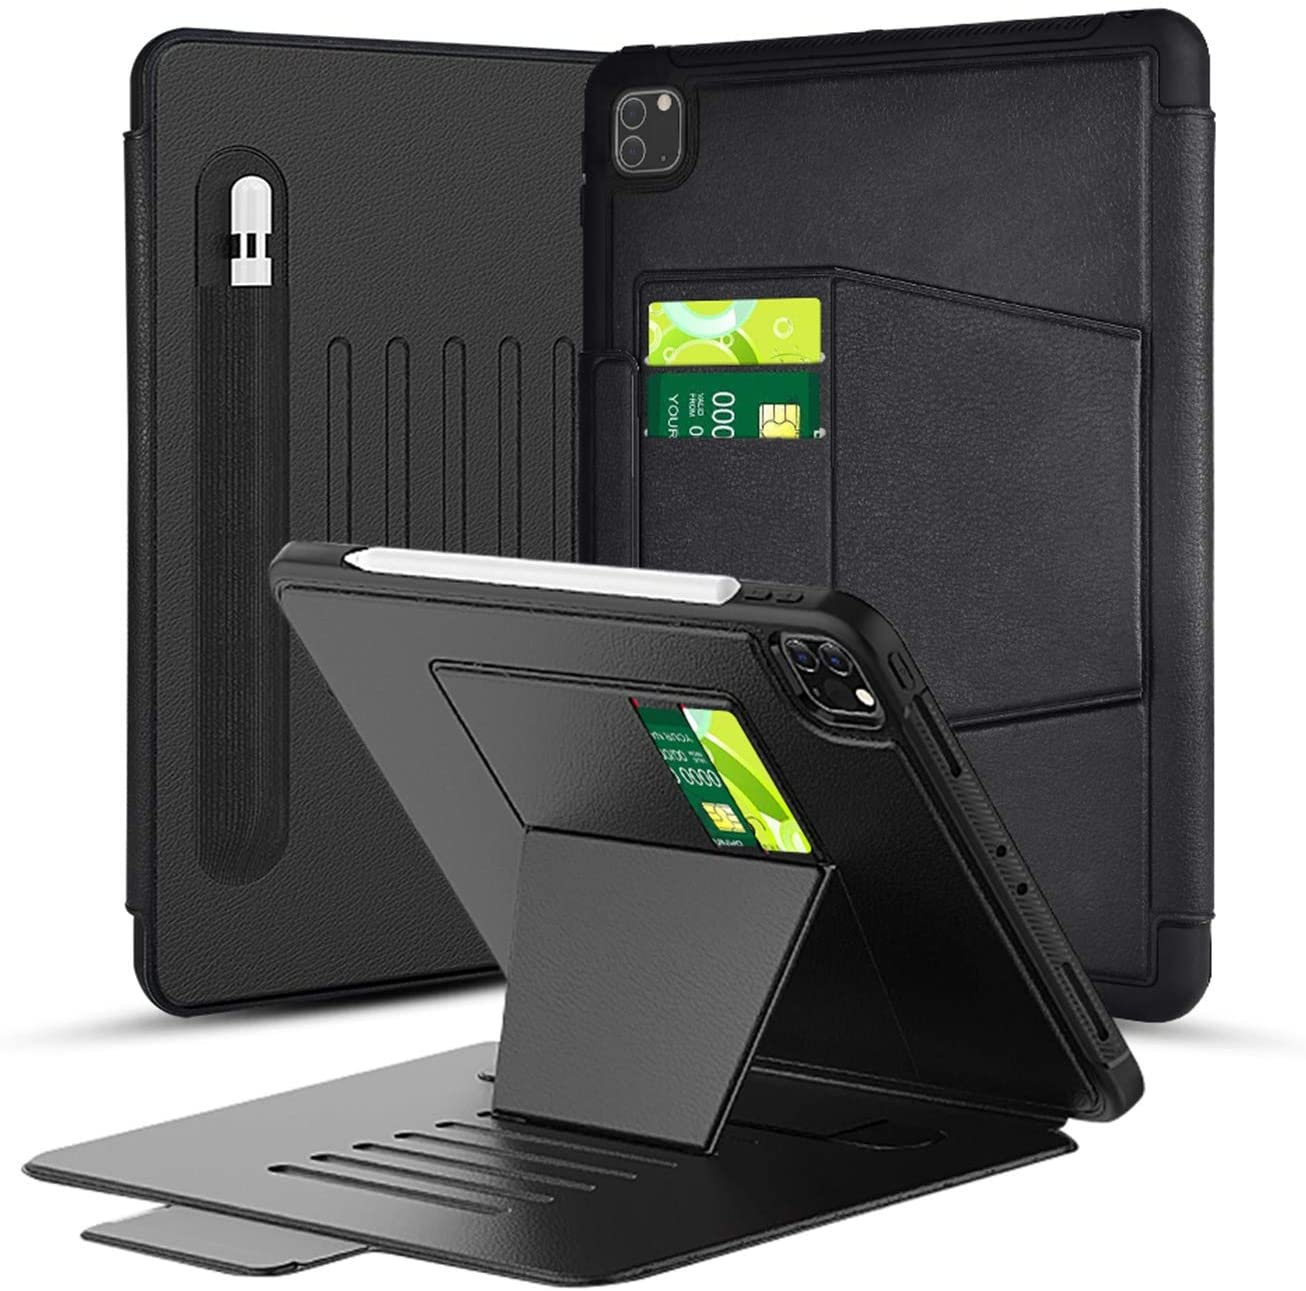 TGOOD iPad Pro 11 Case 2nd Gen 2020/2018 with Pen Holder,[Without Screen Protector],Durable and Shockproof Multi-Function Bracket Cover for ipad pro 11 inch(Model: A2228, A2068, A2230, A2231)-Black